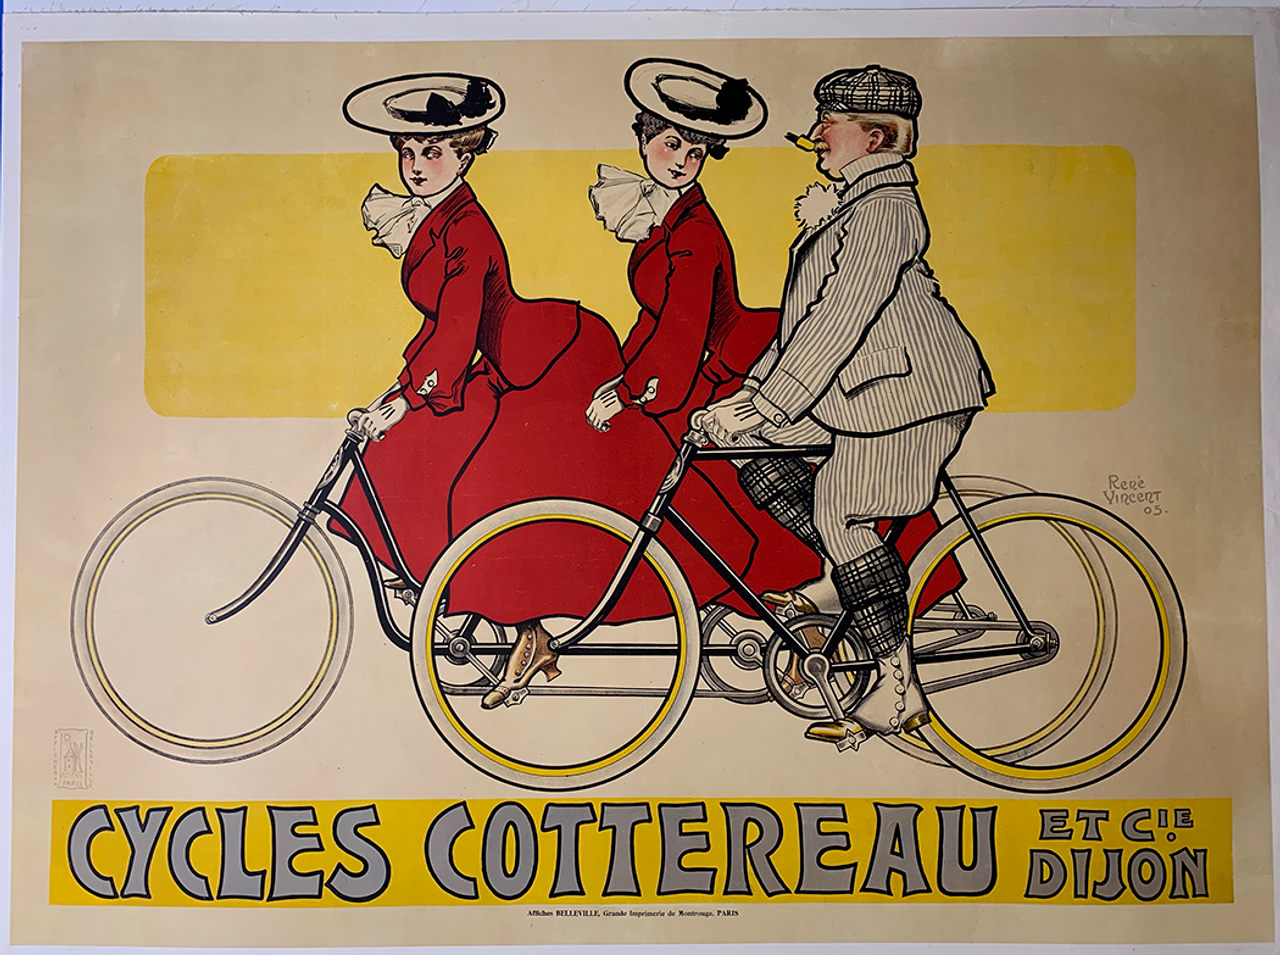 Cycles Cottereau Original Vintage  Bicycle Poster by Vincent